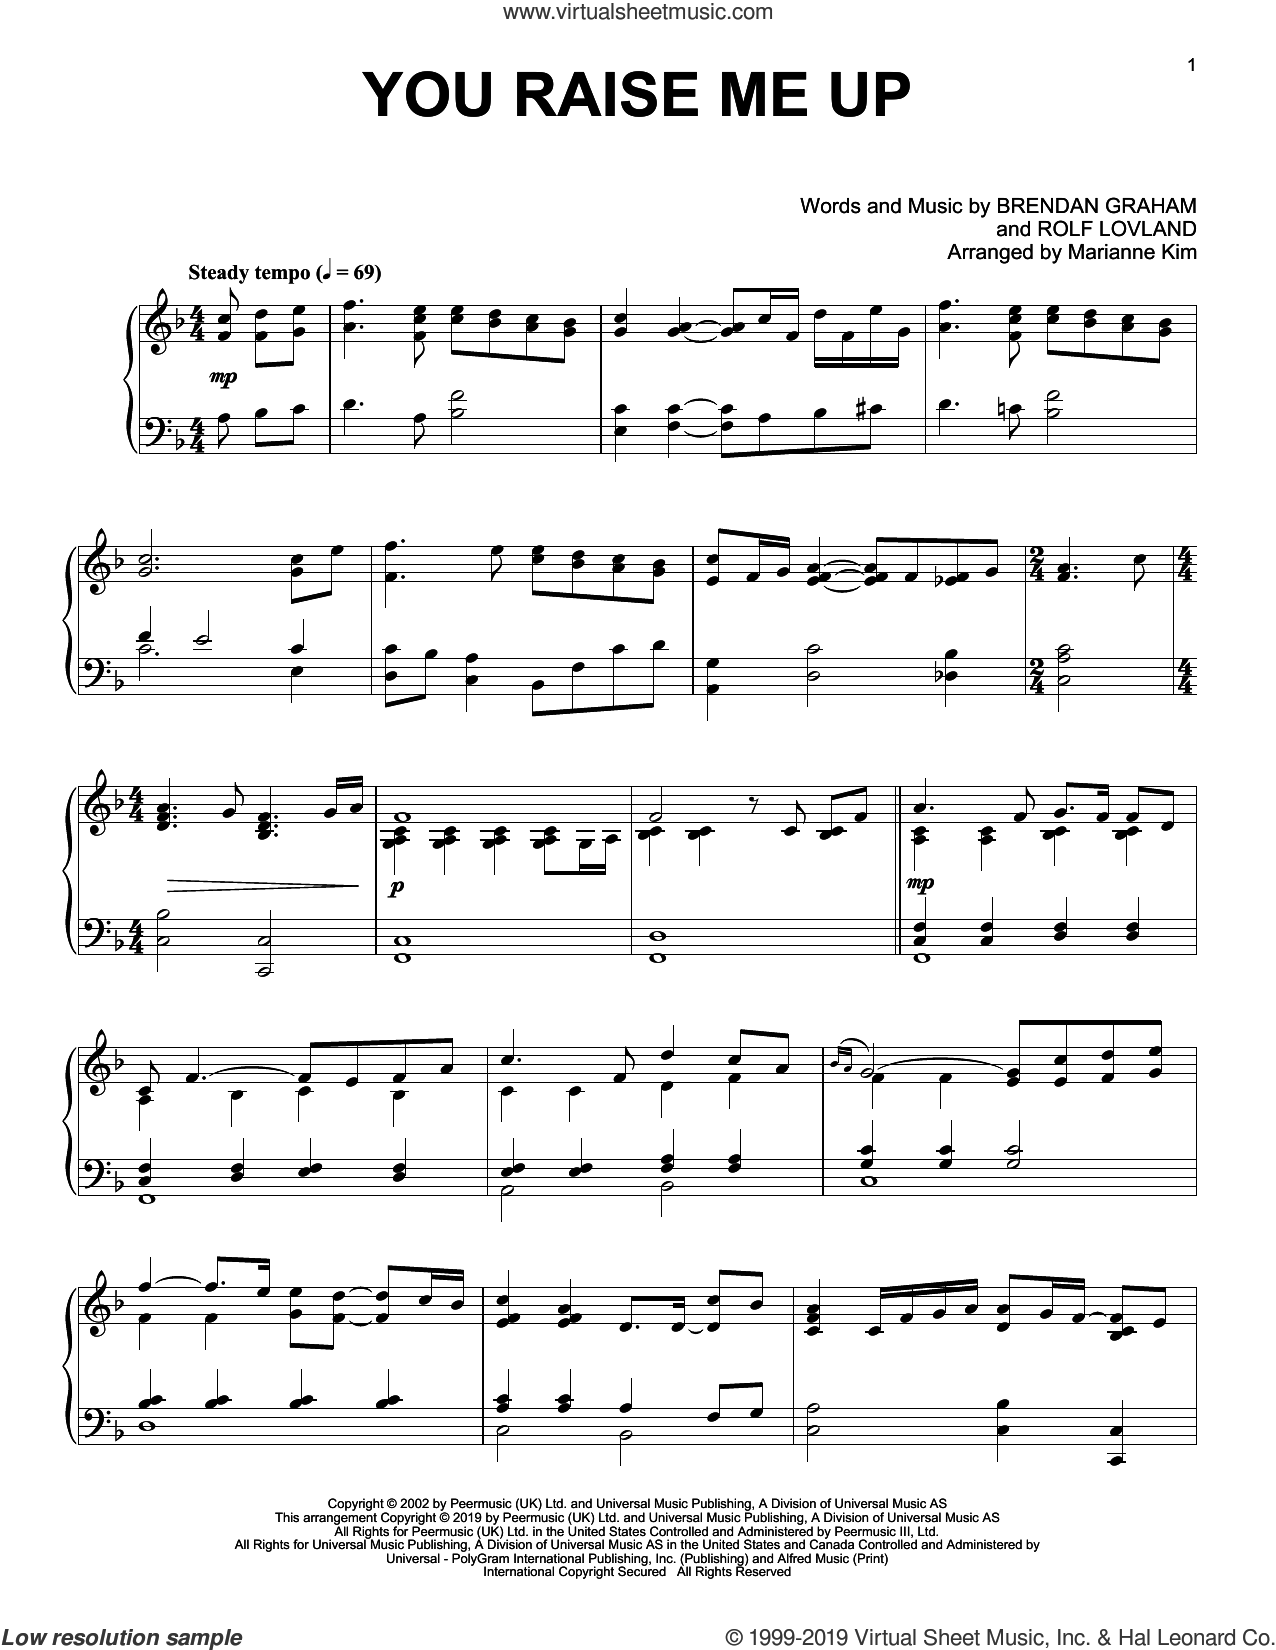 You Raise Me Up (arr. Marianne Kim) sheet music for piano solo by Josh Groban, Marianne Kim, Brendan Graham and Rolf Lovland, wedding score, intermediate skill level